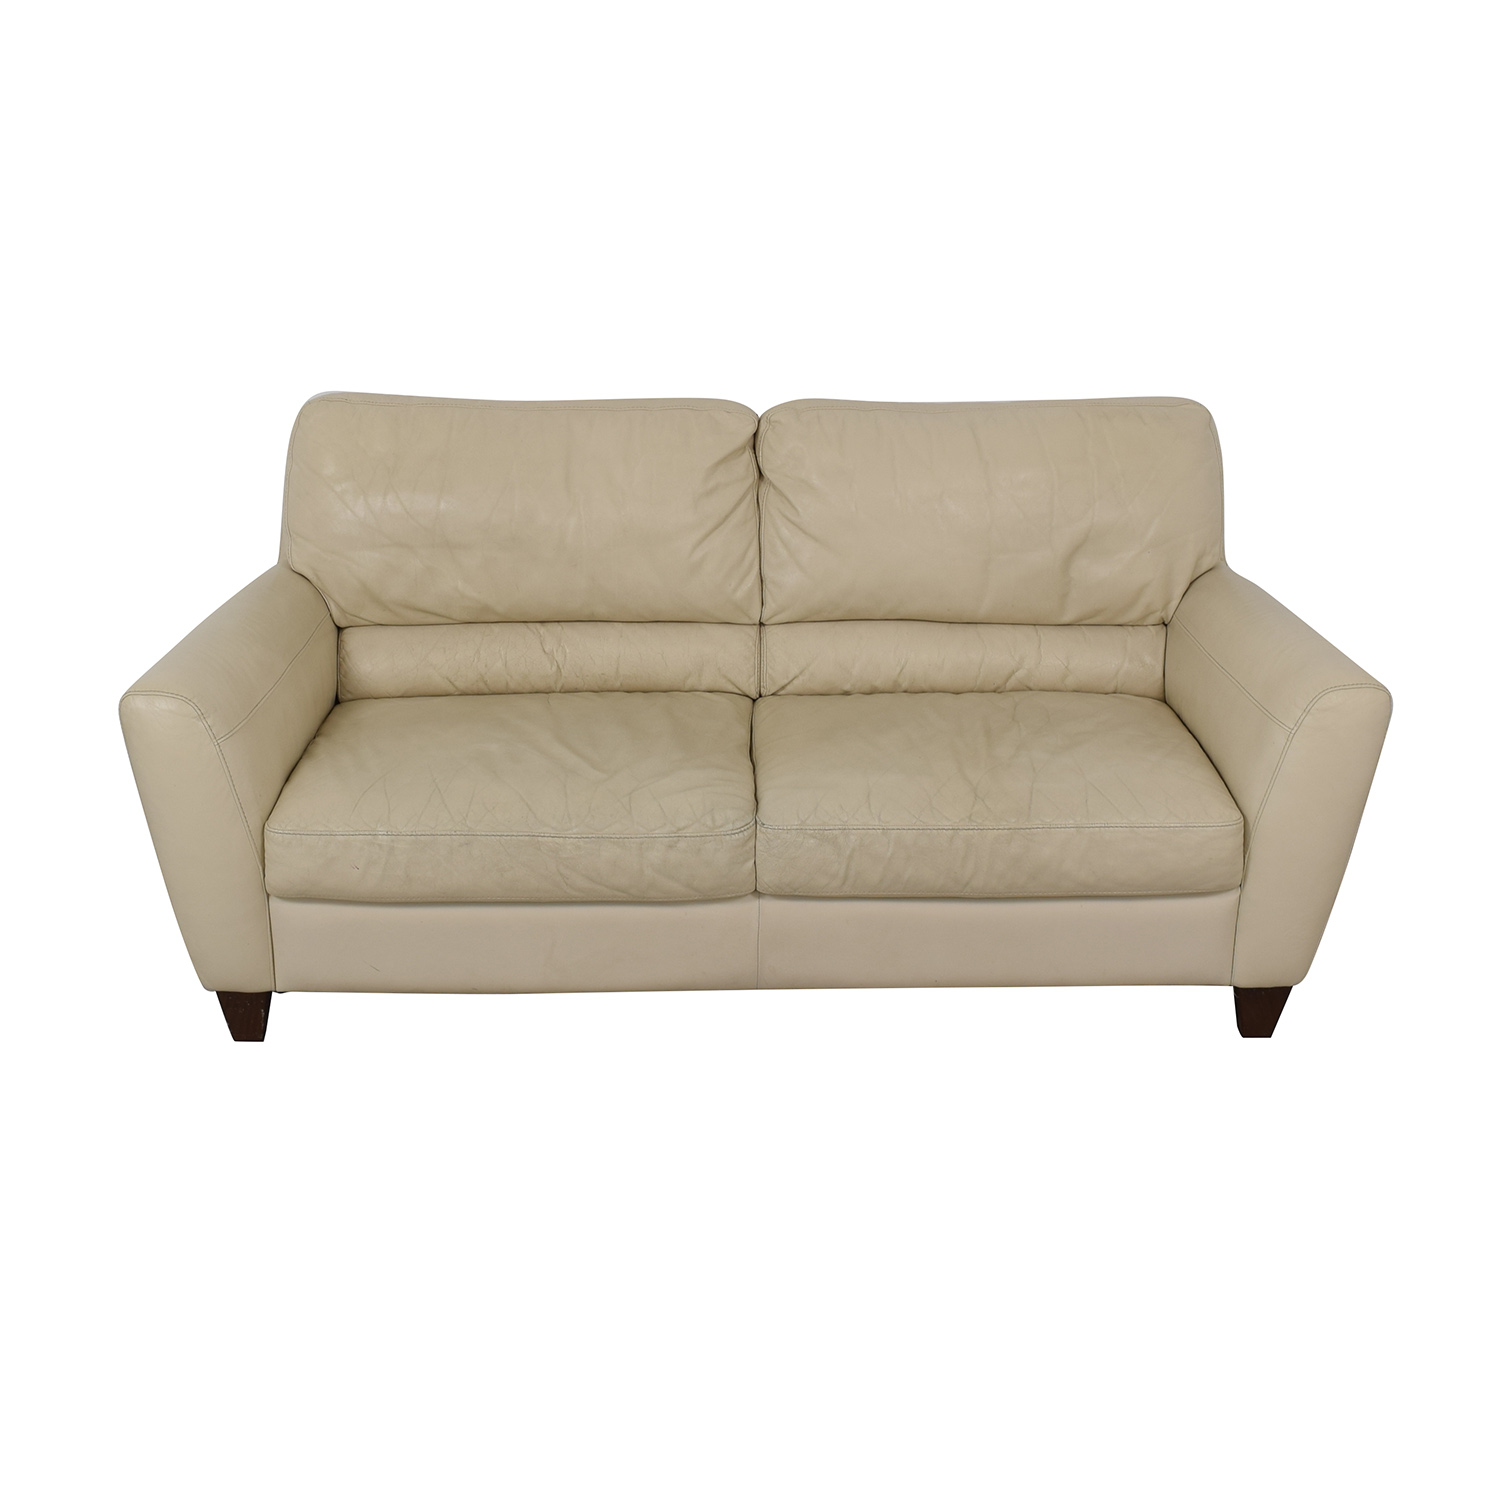 shop Macy's White Two-Cushion Sofa Macy's Sofas